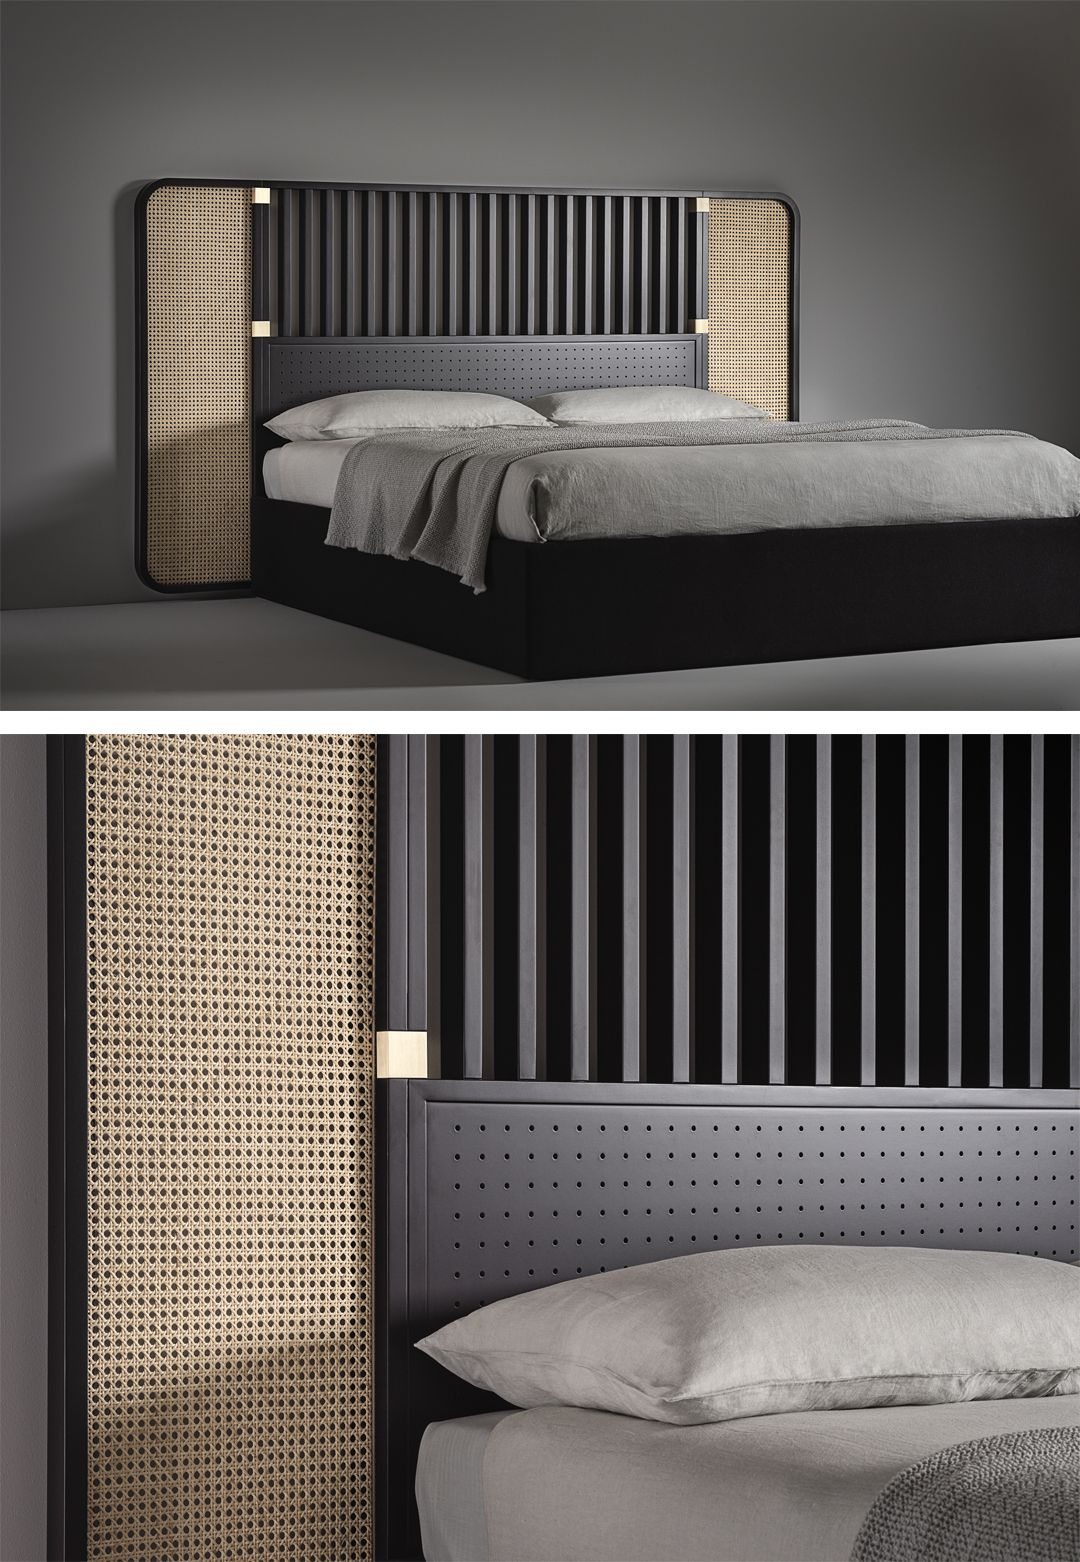 Bringing Their Highly Architectural Approach To The World Of Furniture For The First Time Storagemilano The Architect Bed Headboard Design Bedroom Bed Design